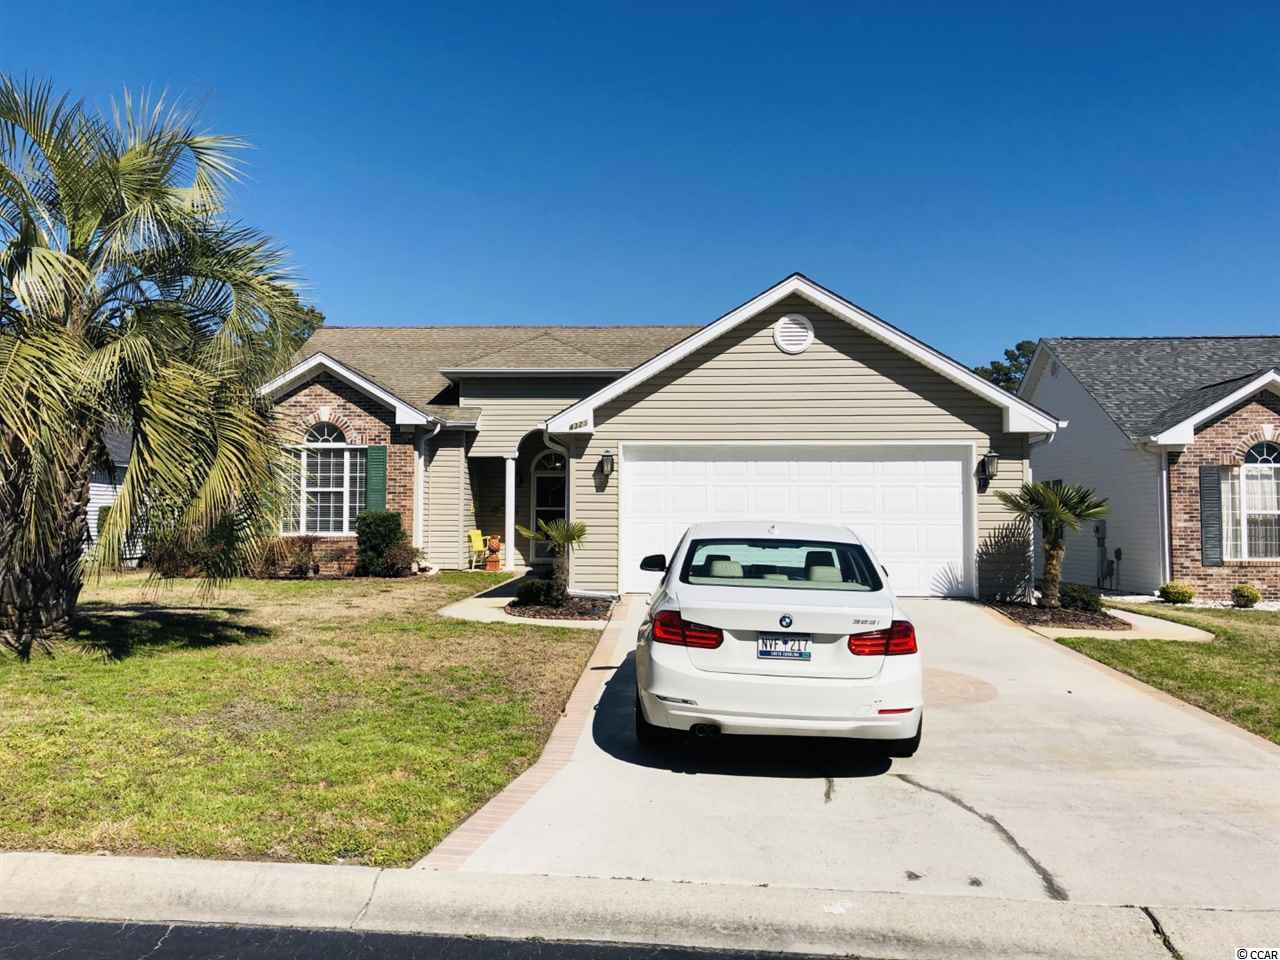 Looking for a UPGRADED, SPOTLESS, PET/SMOKE FREE house? This 3 bedroom gem has been fully upgraded within 5 years, in the largest  golf course and Intercoastal Waterway communities in the area. House sits on a large lake with golf course view behind. Upgrades include, new floors, kitchen, countertops, appliances, bathrooms, and paint. Furniture negotiable. Main living area features vaulted ceilings, off to the back a Carolina Room and kitchen/breakfast area on right, all with plenty of windows and open view of the lake and golf course. Kitchen features tall cabinets, granite countertops, stainless steel appliances and backsplash. Master bedroom features 4 large windows for plenty of sunlight, and master bath features double sink and walk in shower for your convenience. Located in the most sought after community of Eastport minutes away from top entertainment, dining, shopping and the BEACH.